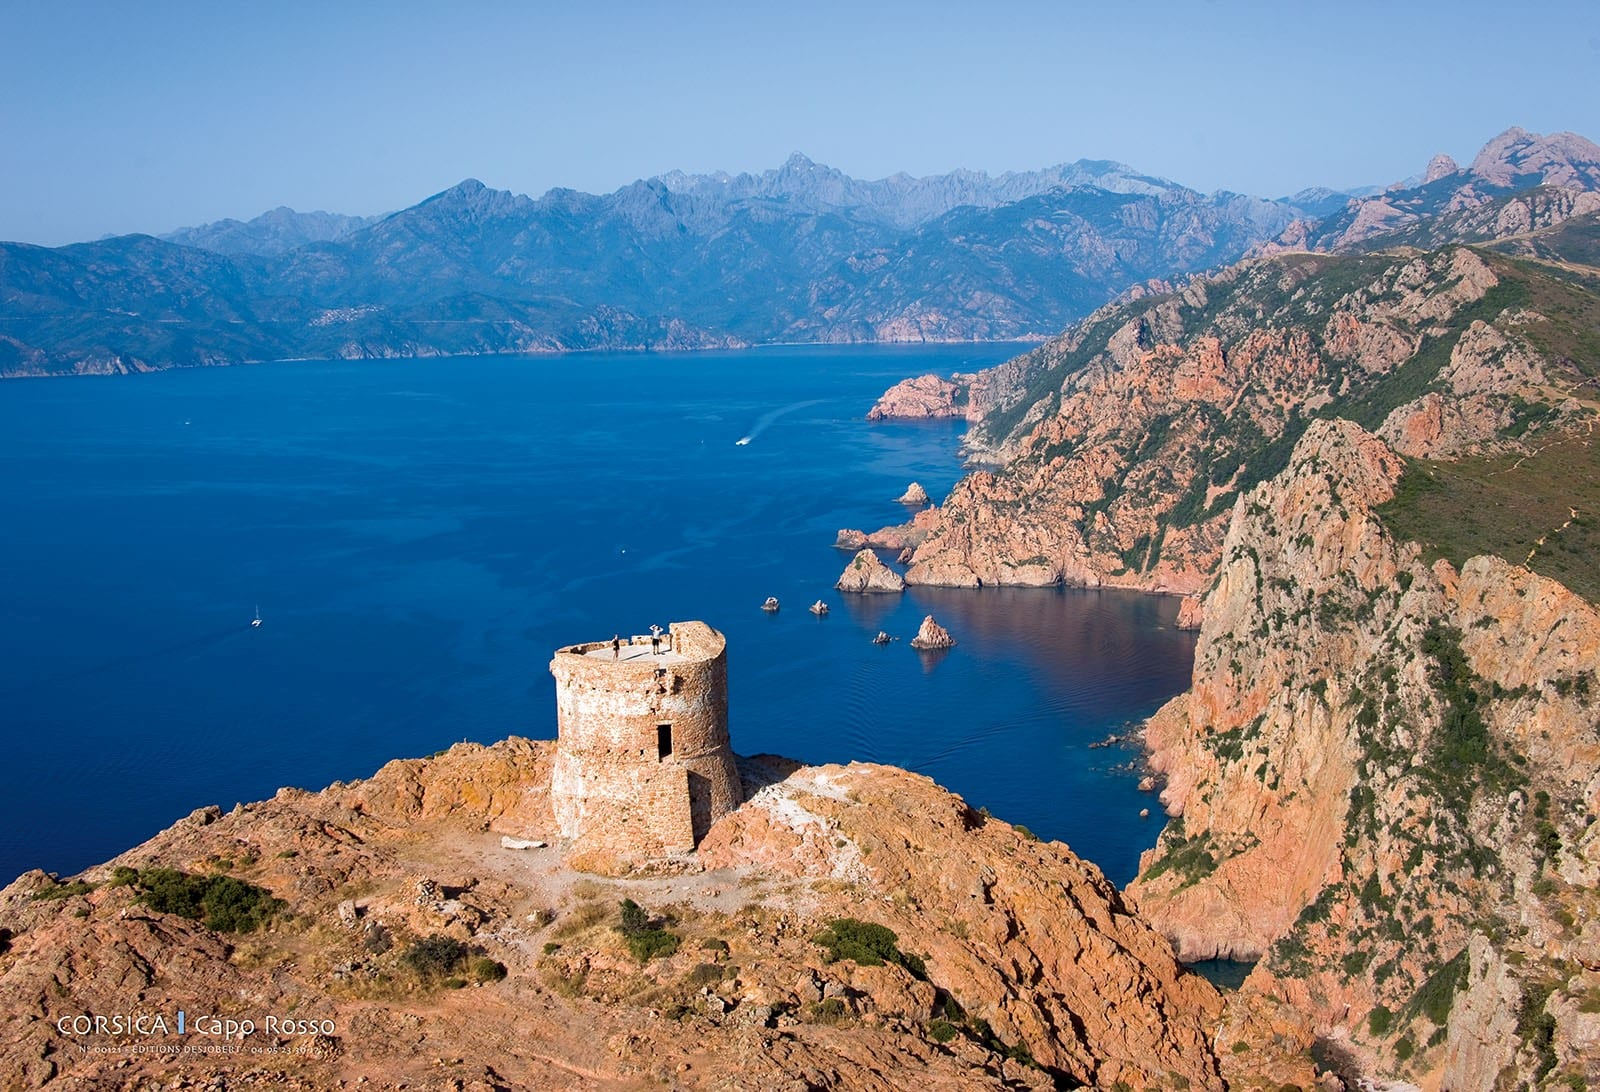 old tower on the coast of a rocky CALANQUES DE PIANA AND CAPO ROSSO